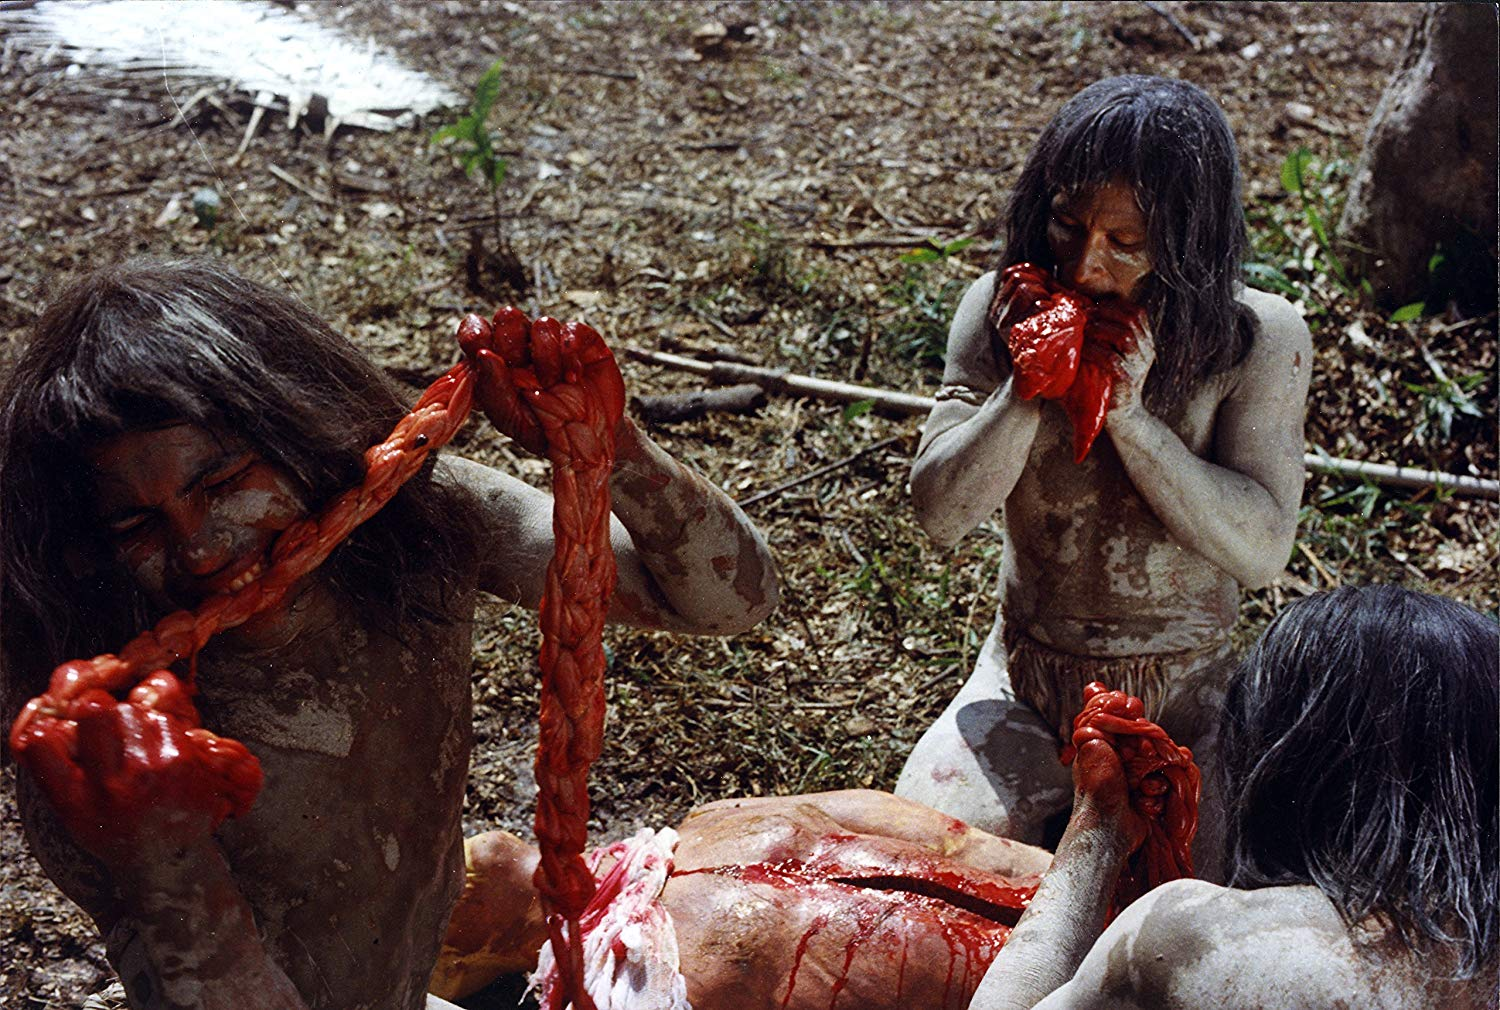 Natives munch on some intestines in Cannibal Ferox (1981)